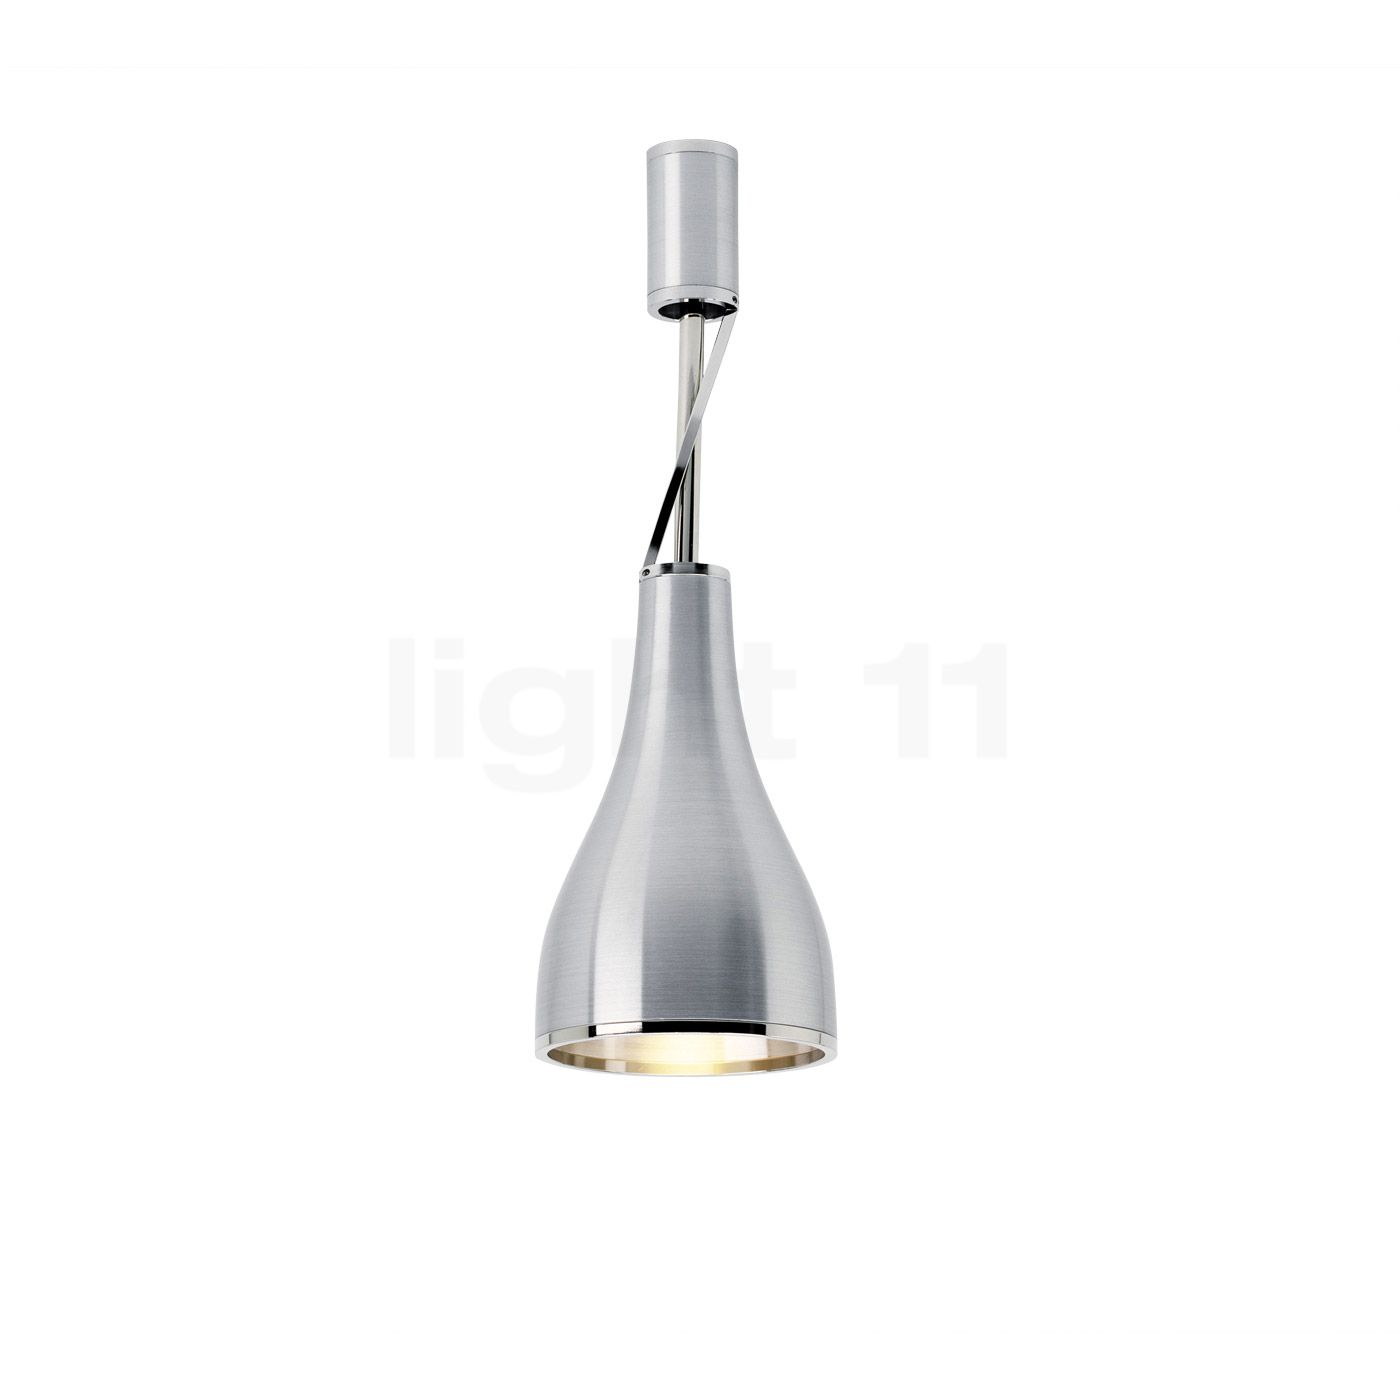 Serien Lighting One Eighty Ceiling/Wall S Wall lights